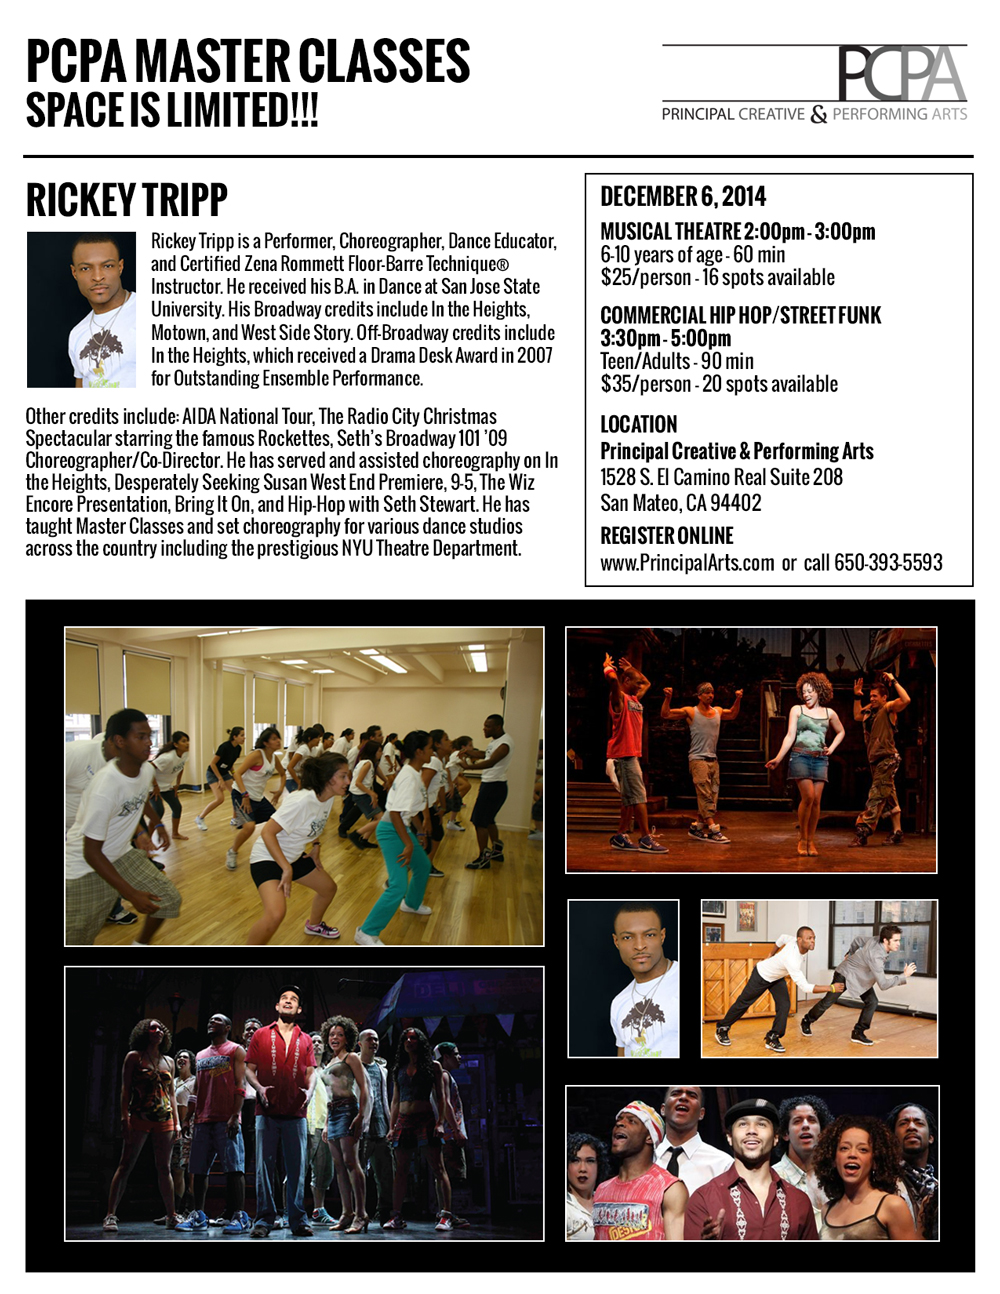 Rickey Tripp - Dancer, Choreographer, Instructor